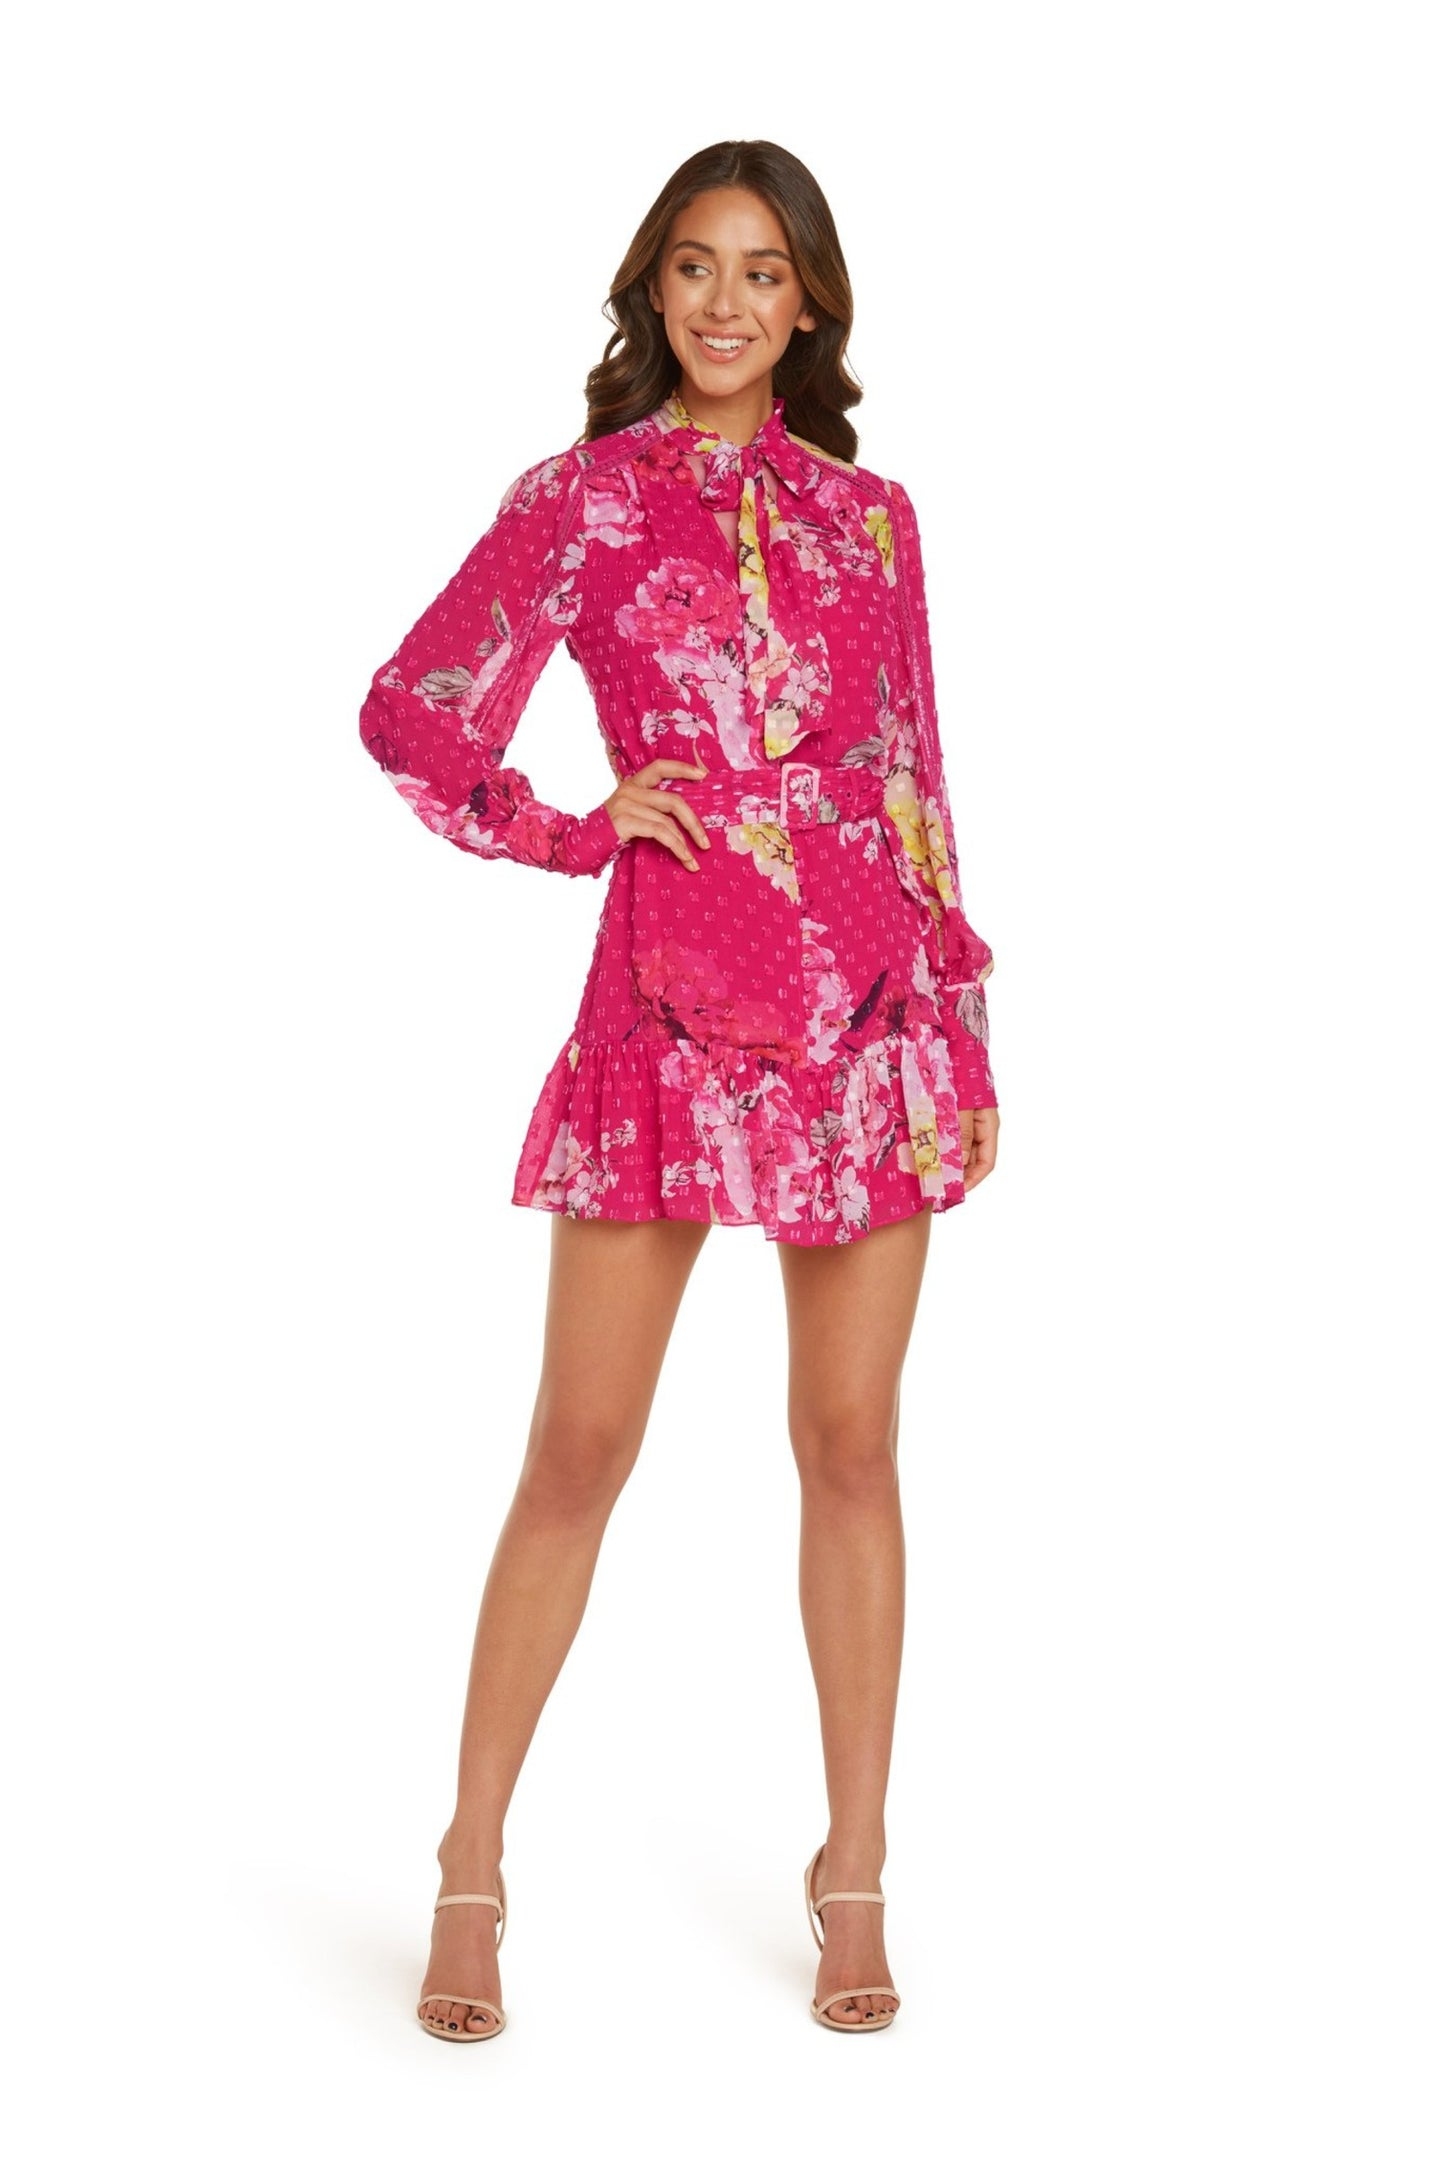 Madison Long Sleeve Mini Dress in Hot Pink Floral Printed Clip Dot with Lace Detail